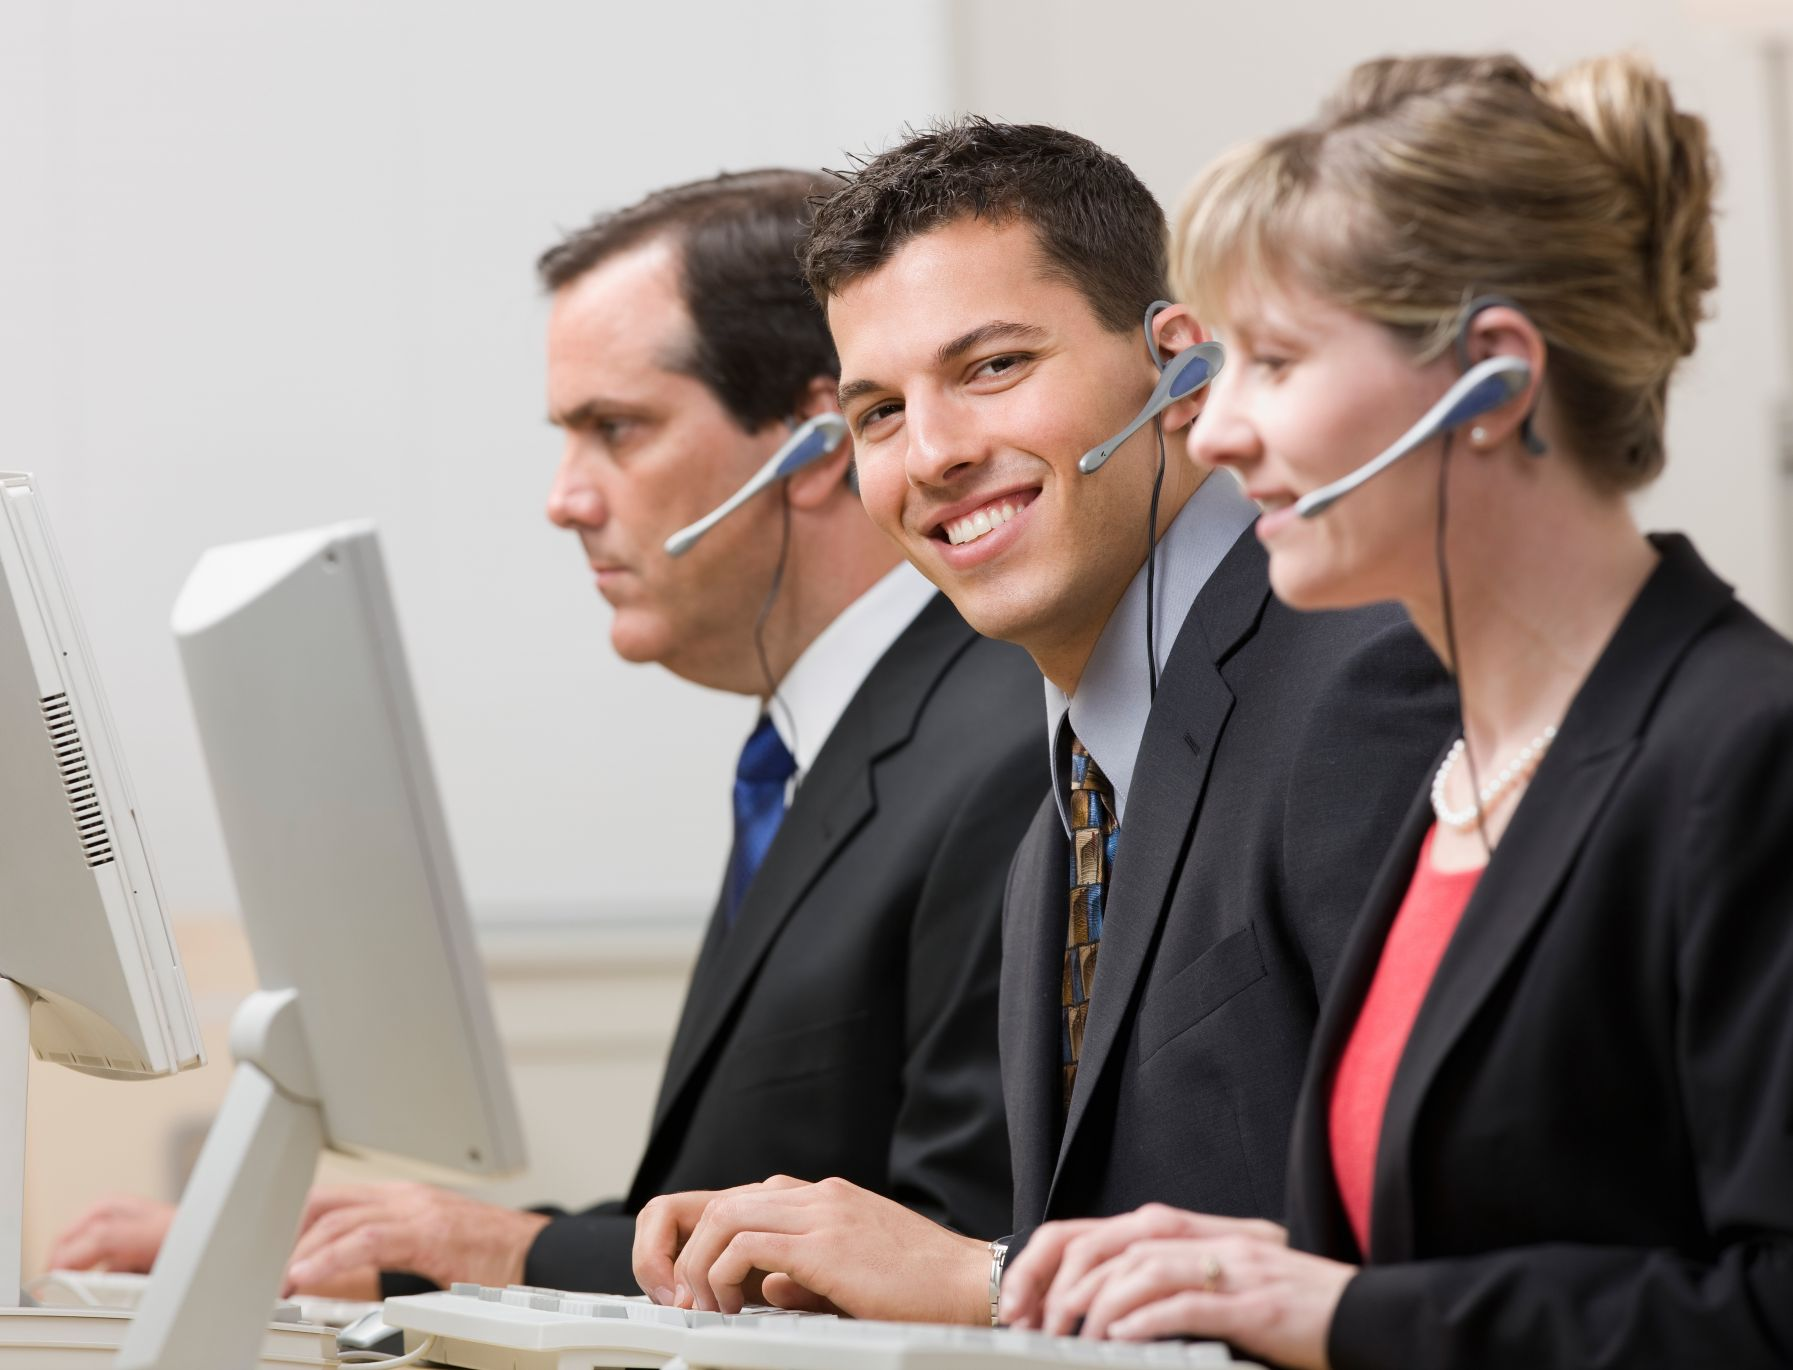 call center service providers in india